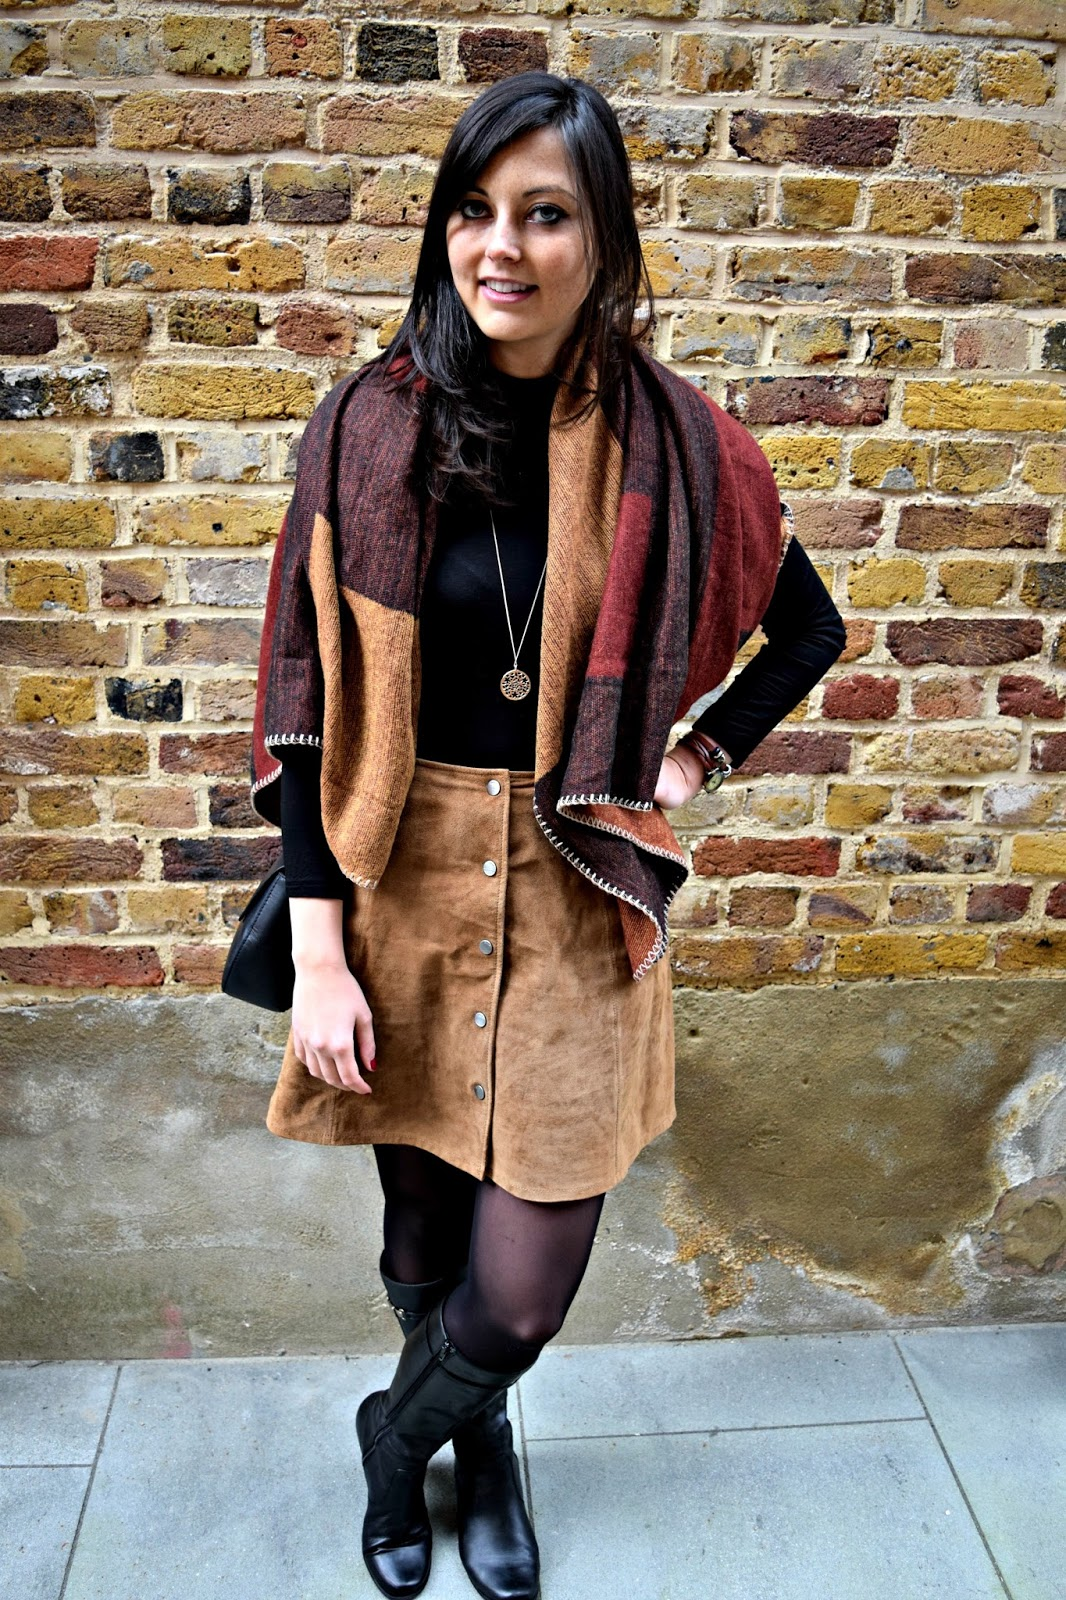 OOTD Fashion Post Including a boho look and leather skirt